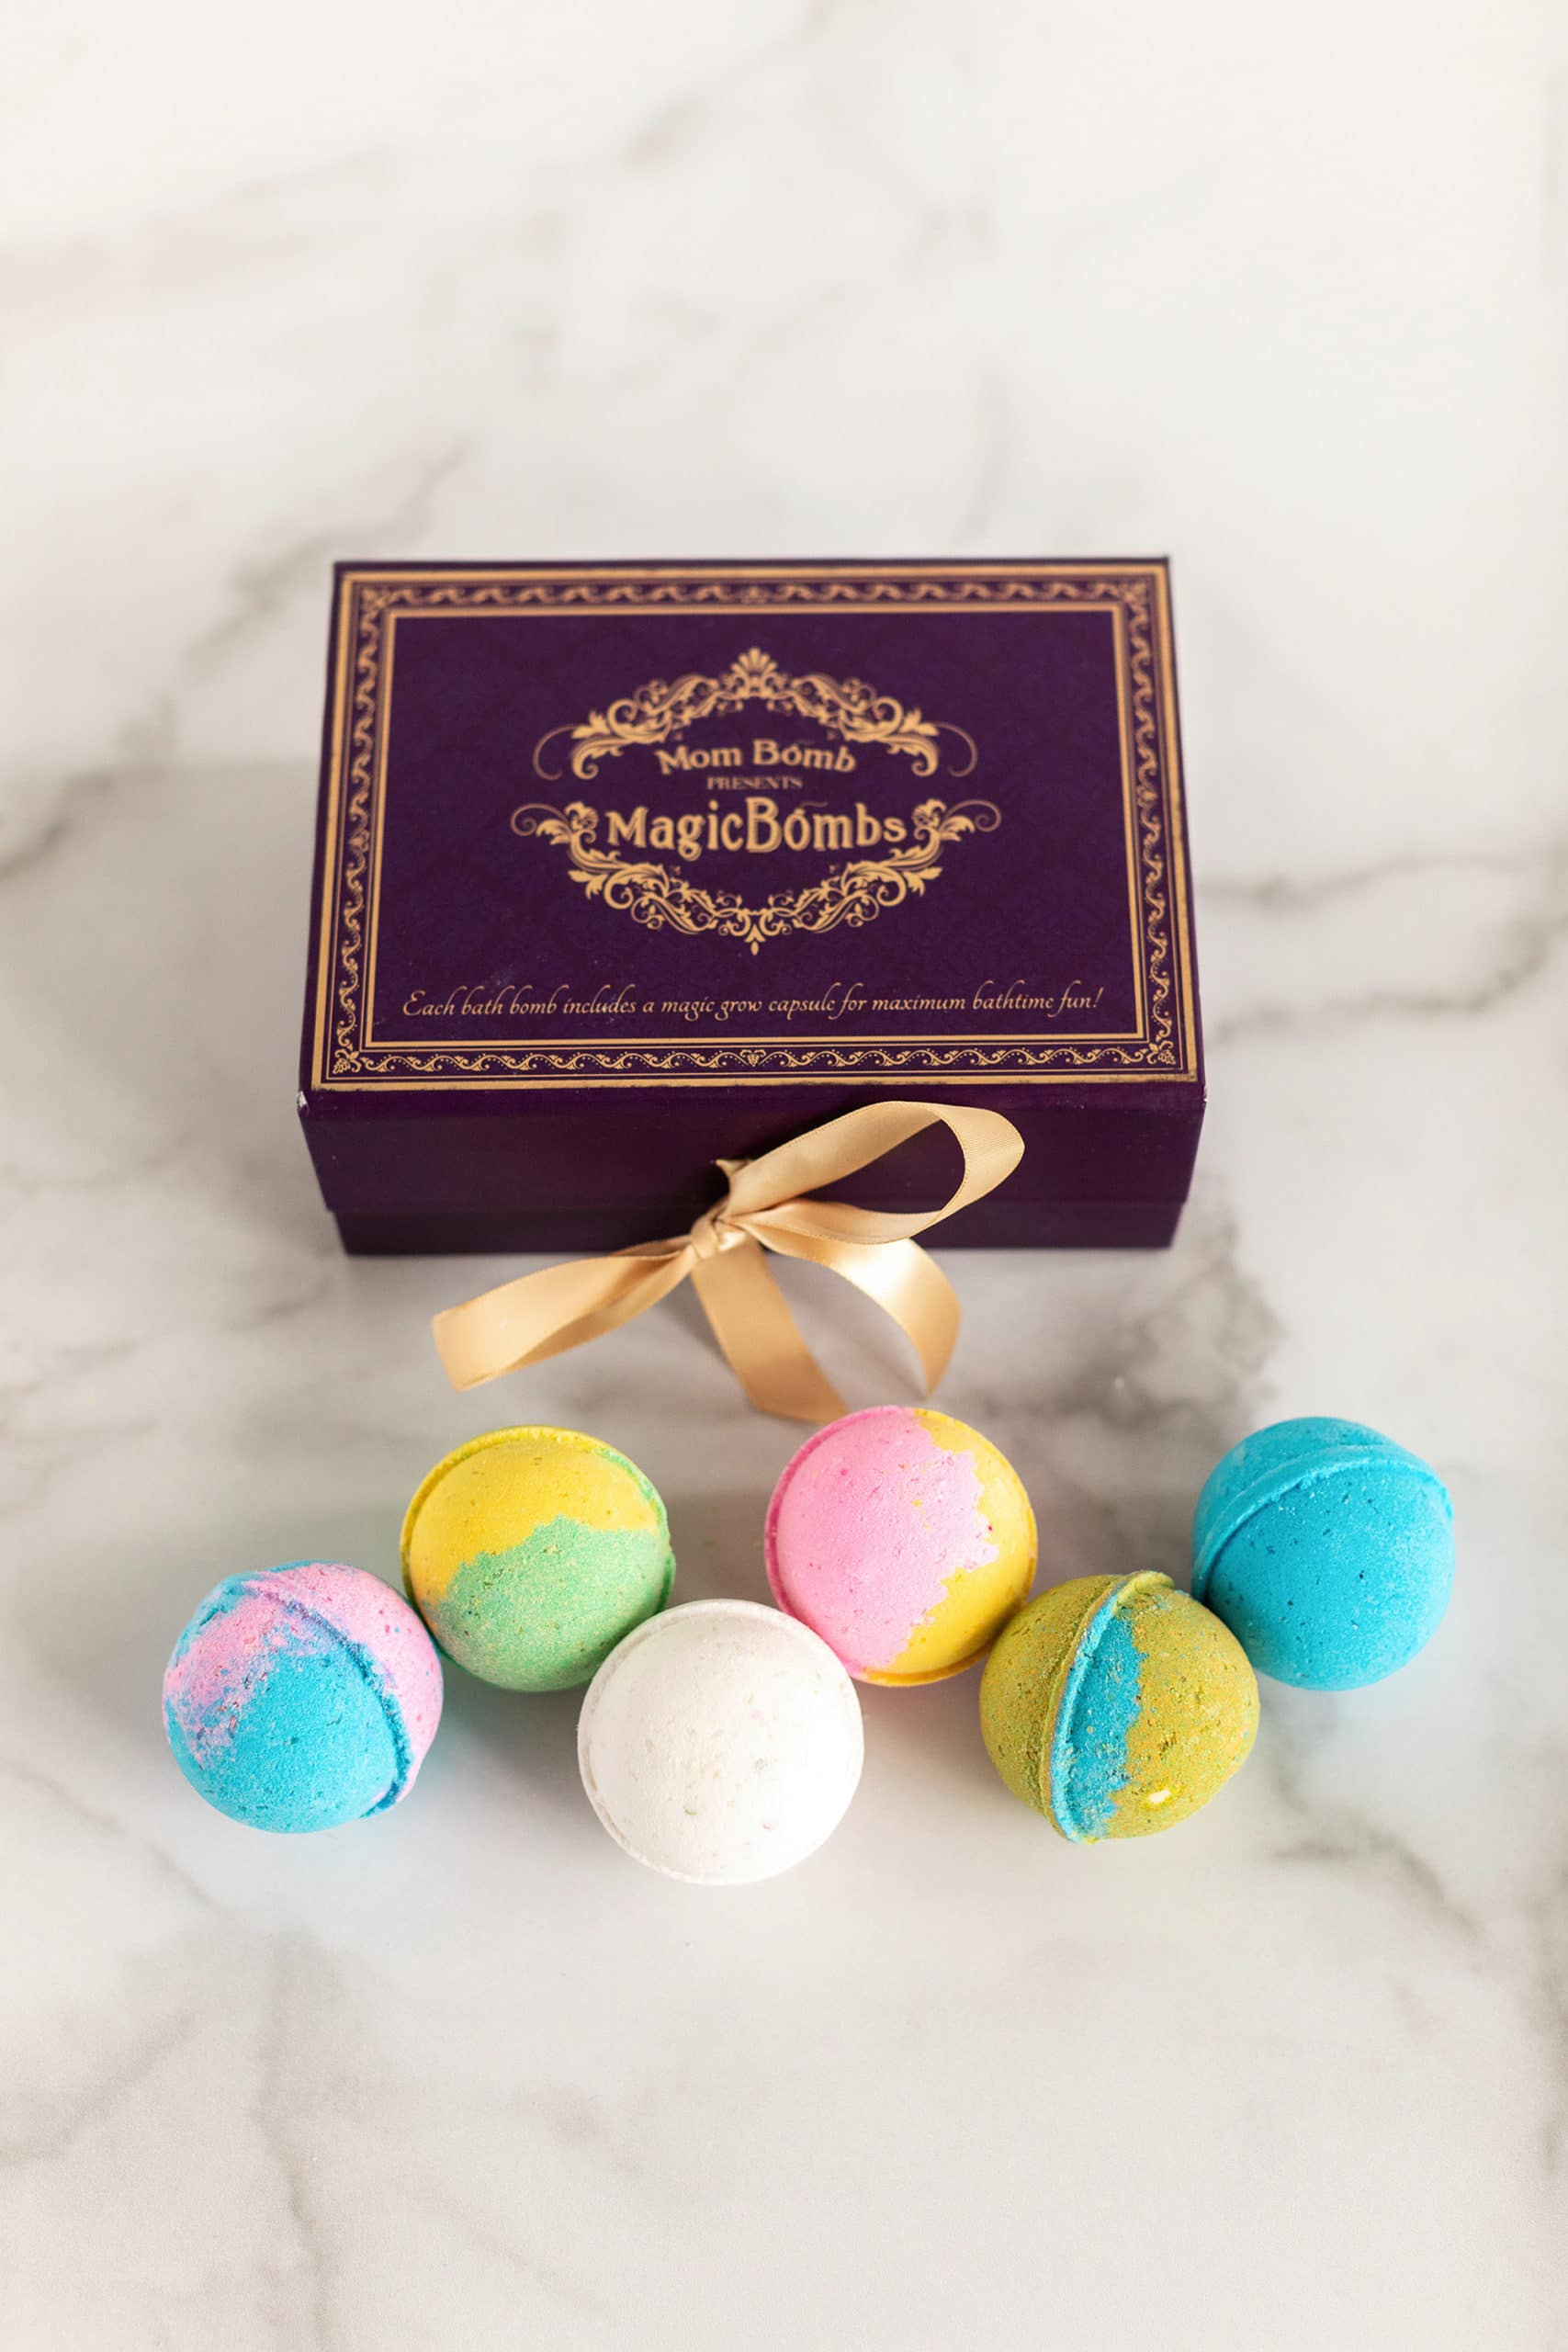 MomBomb Magic Box. Six unique fun-scented, vibrant colored bath bombs are nestled in a beautiful keepsake box, tied with satin ribbon. Each gift set comes with 6 unique scents that are the perfect balance without overwhelming the senses. 2020 Valentine's Day Gift Guide from Jays Sweet N Sour Life Blog.